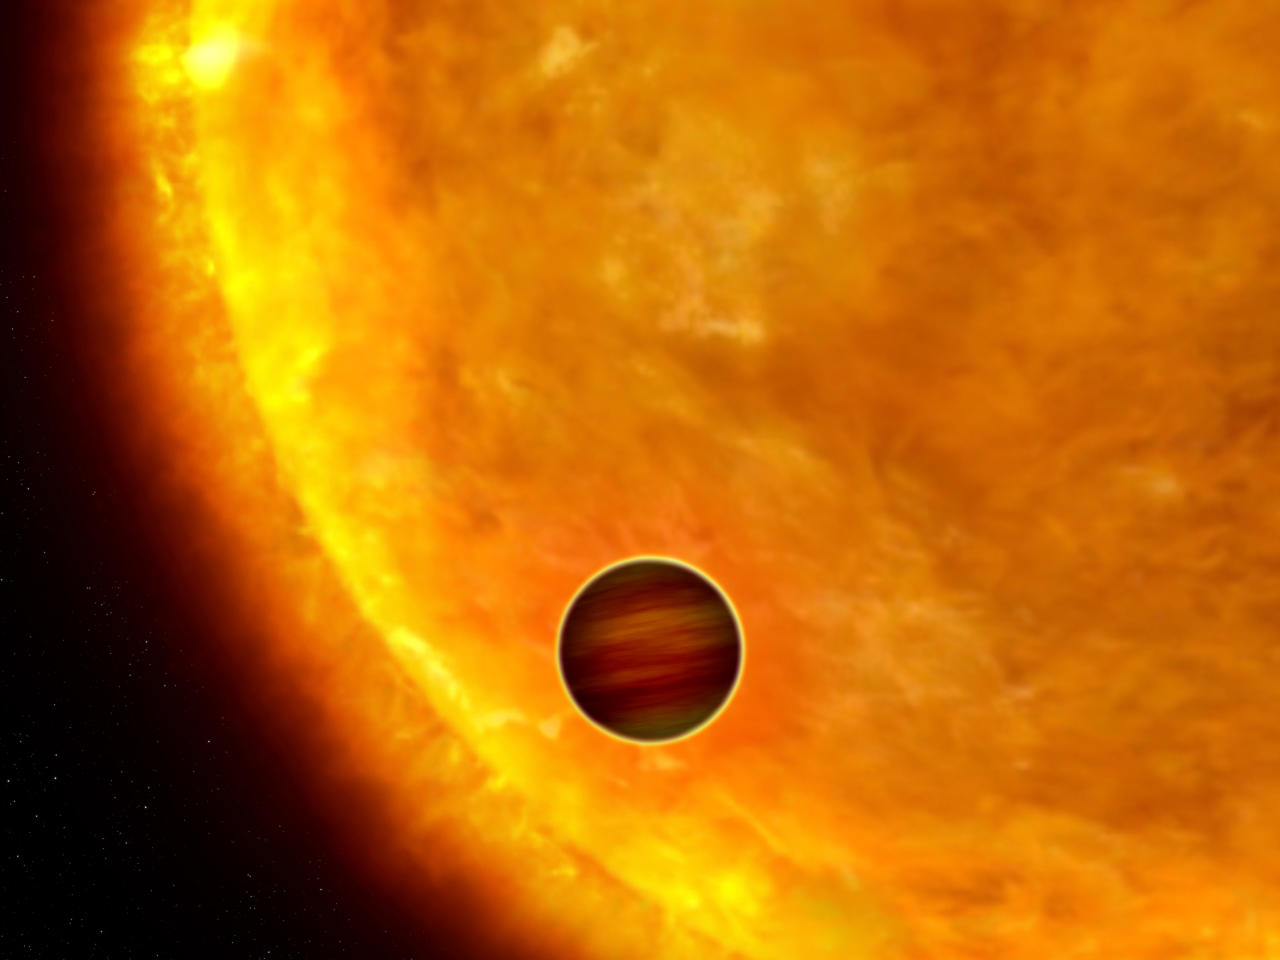 "An artist's impression shows a Jupiter-sized planet passing in front of its parent star. Such events are called transits. When the planet transits the star, the star's apparent brightness drops by a few percent for a short period. Through this technique, astronomers can use the Hubble Space Telescope to search for planets across the galaxy by measuring periodic changes in a star's luminosity. The first class of exoplanets found by this technique are the so-called ""hot Jupiters,"" which are so close to their stars they complete an orbit within days, or even hours.  REUTERS/NASA/ESA/G. Bacon/Handout"